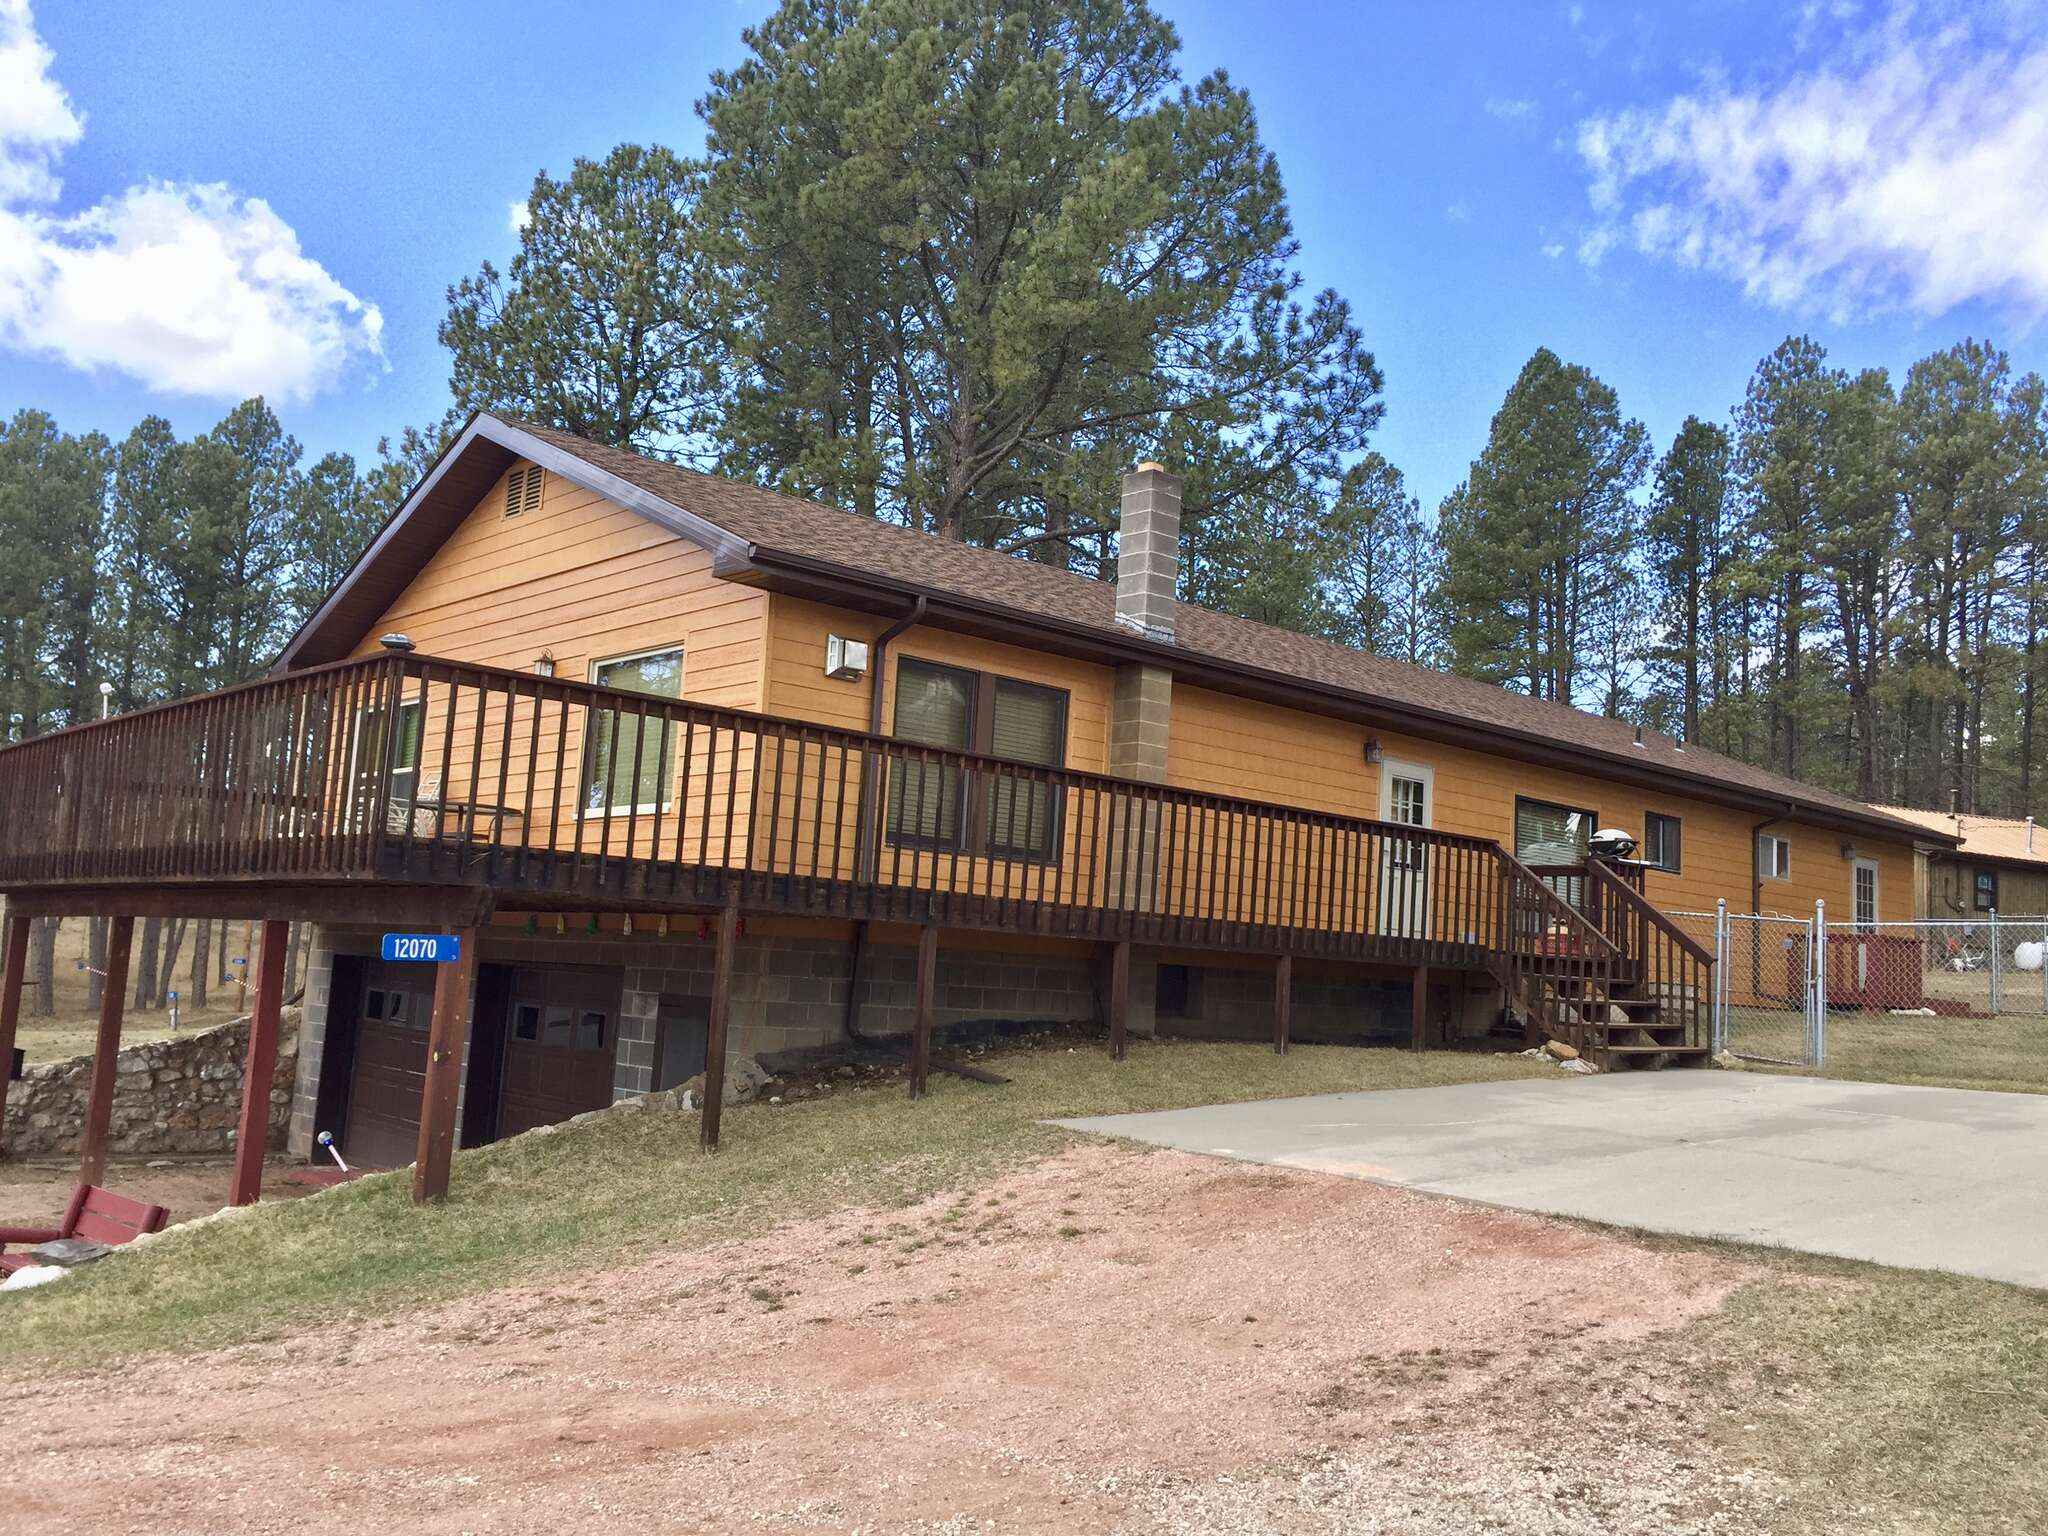 Income Property for Sale at 12070 W Big Pine Rd Custer, South Dakota 57730 United States